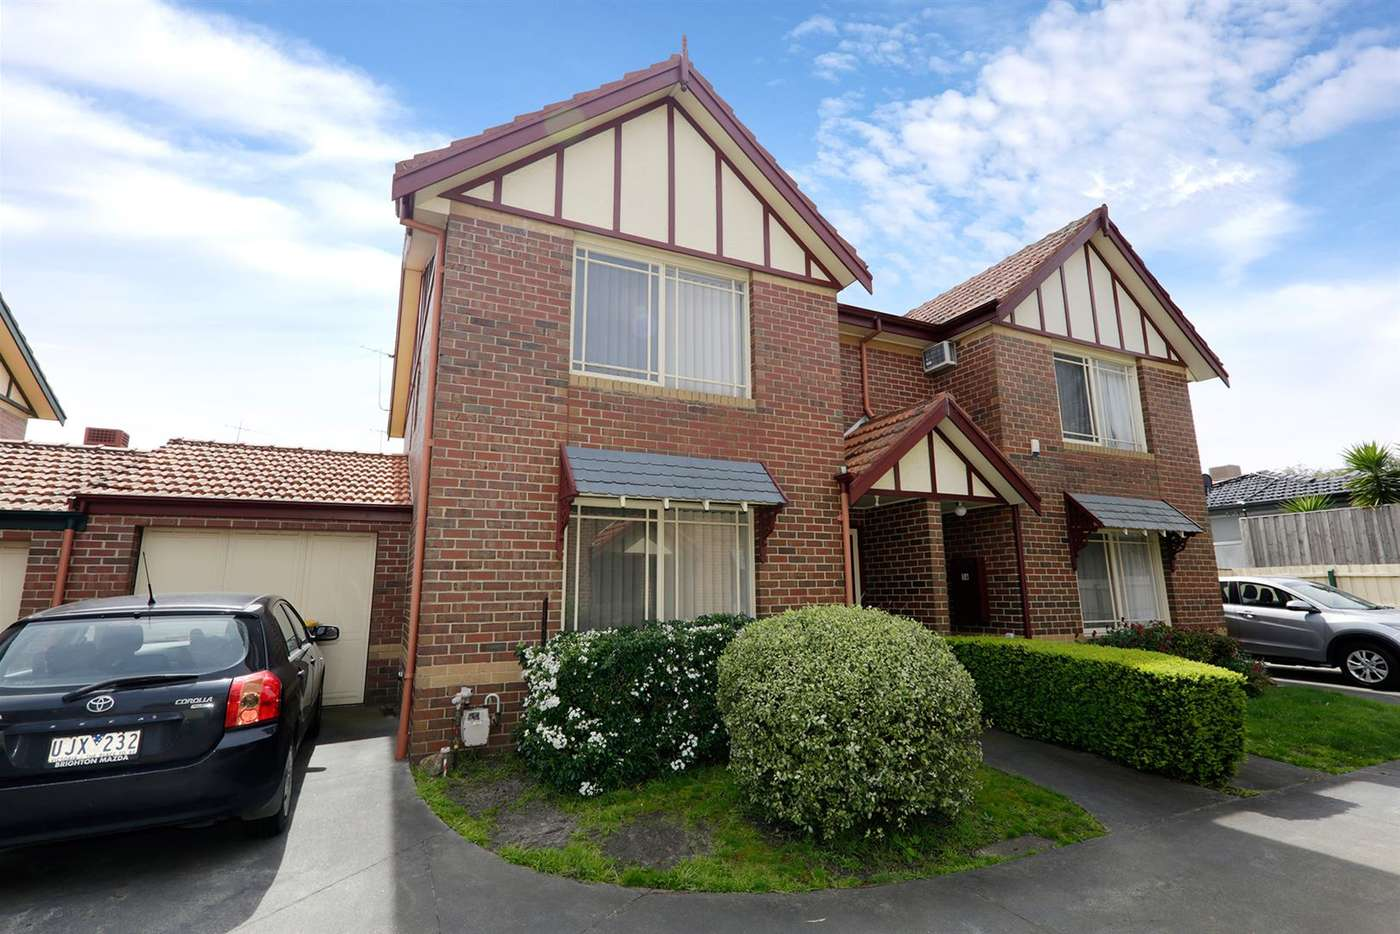 Main view of Homely unit listing, 15/12 Surrey Road, Mount Waverley VIC 3149